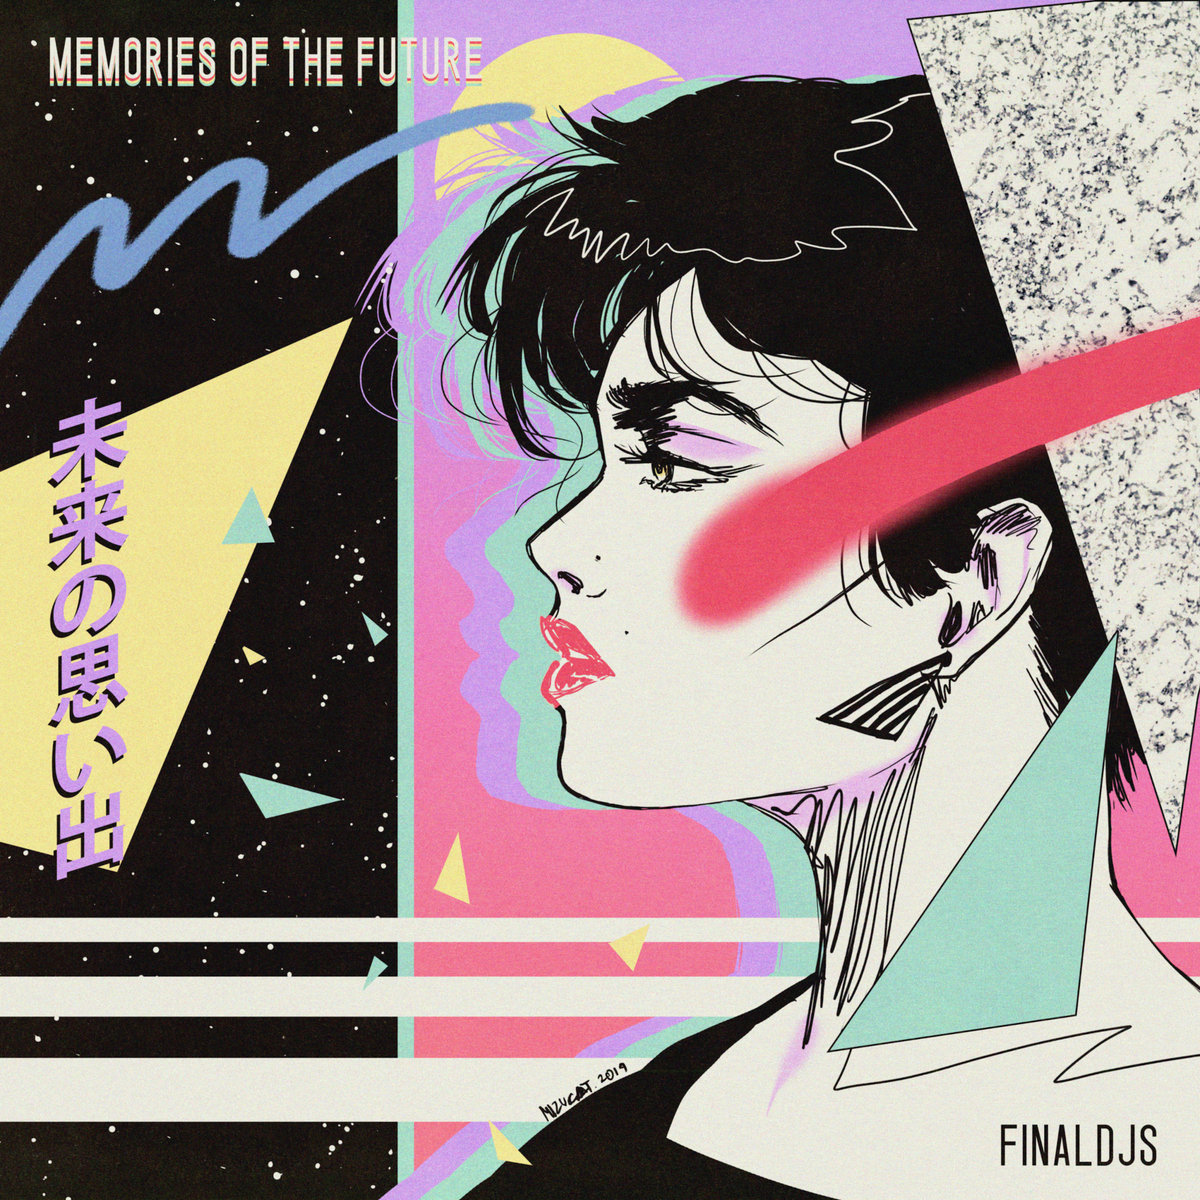 Memories of the Future von Final DJs | Full Album Stream